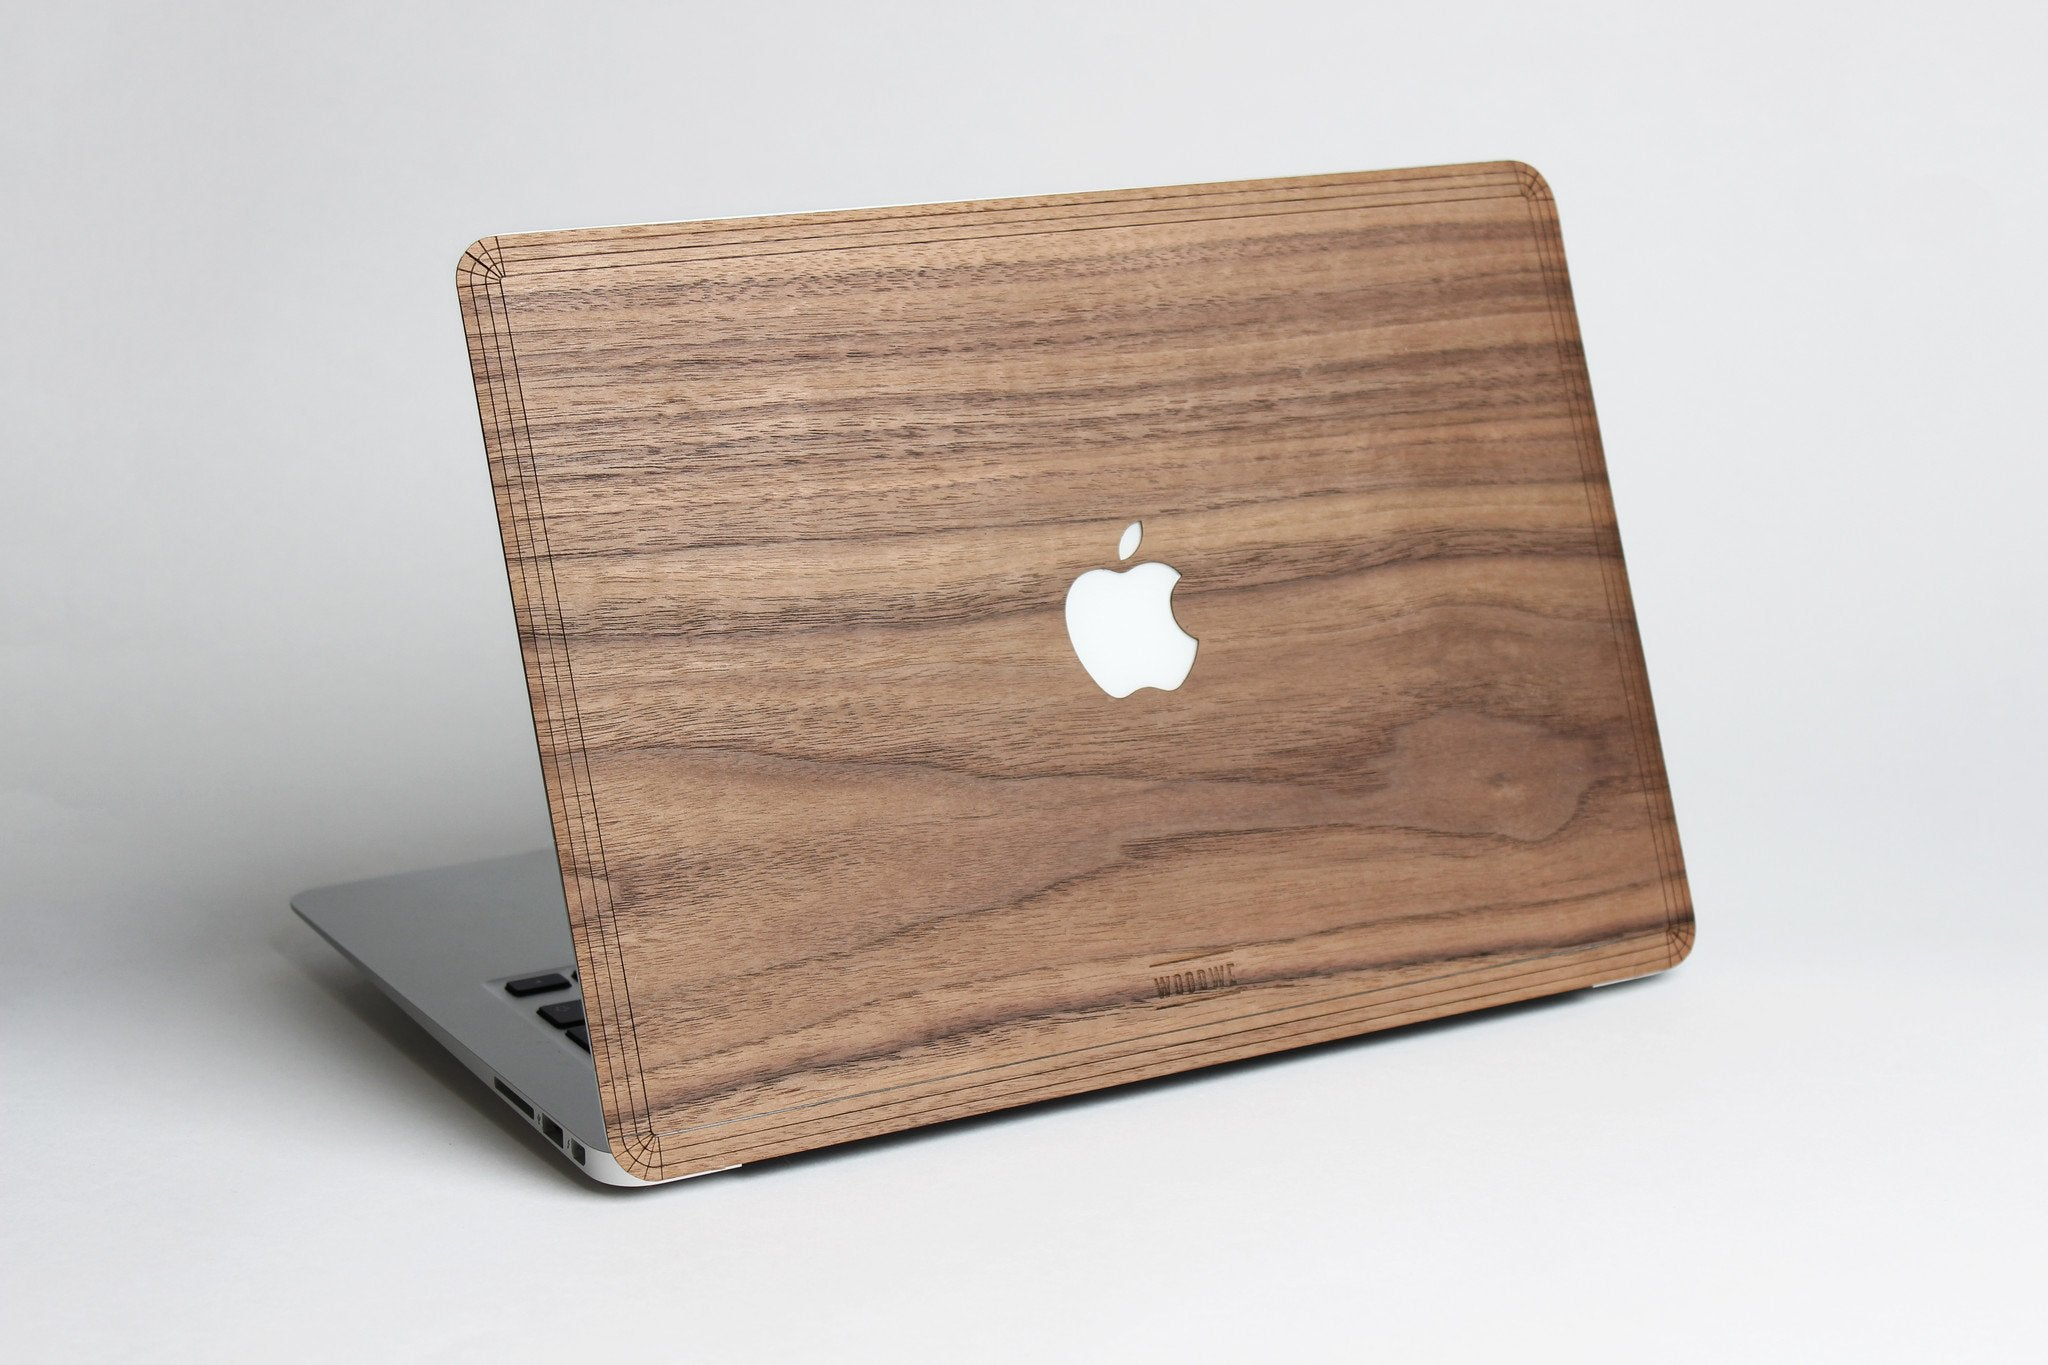 best service 13cfb 079fd Wood Case for Macbook Pro Touch Bar (Late 2016 - Mid 2017) – WoodWe